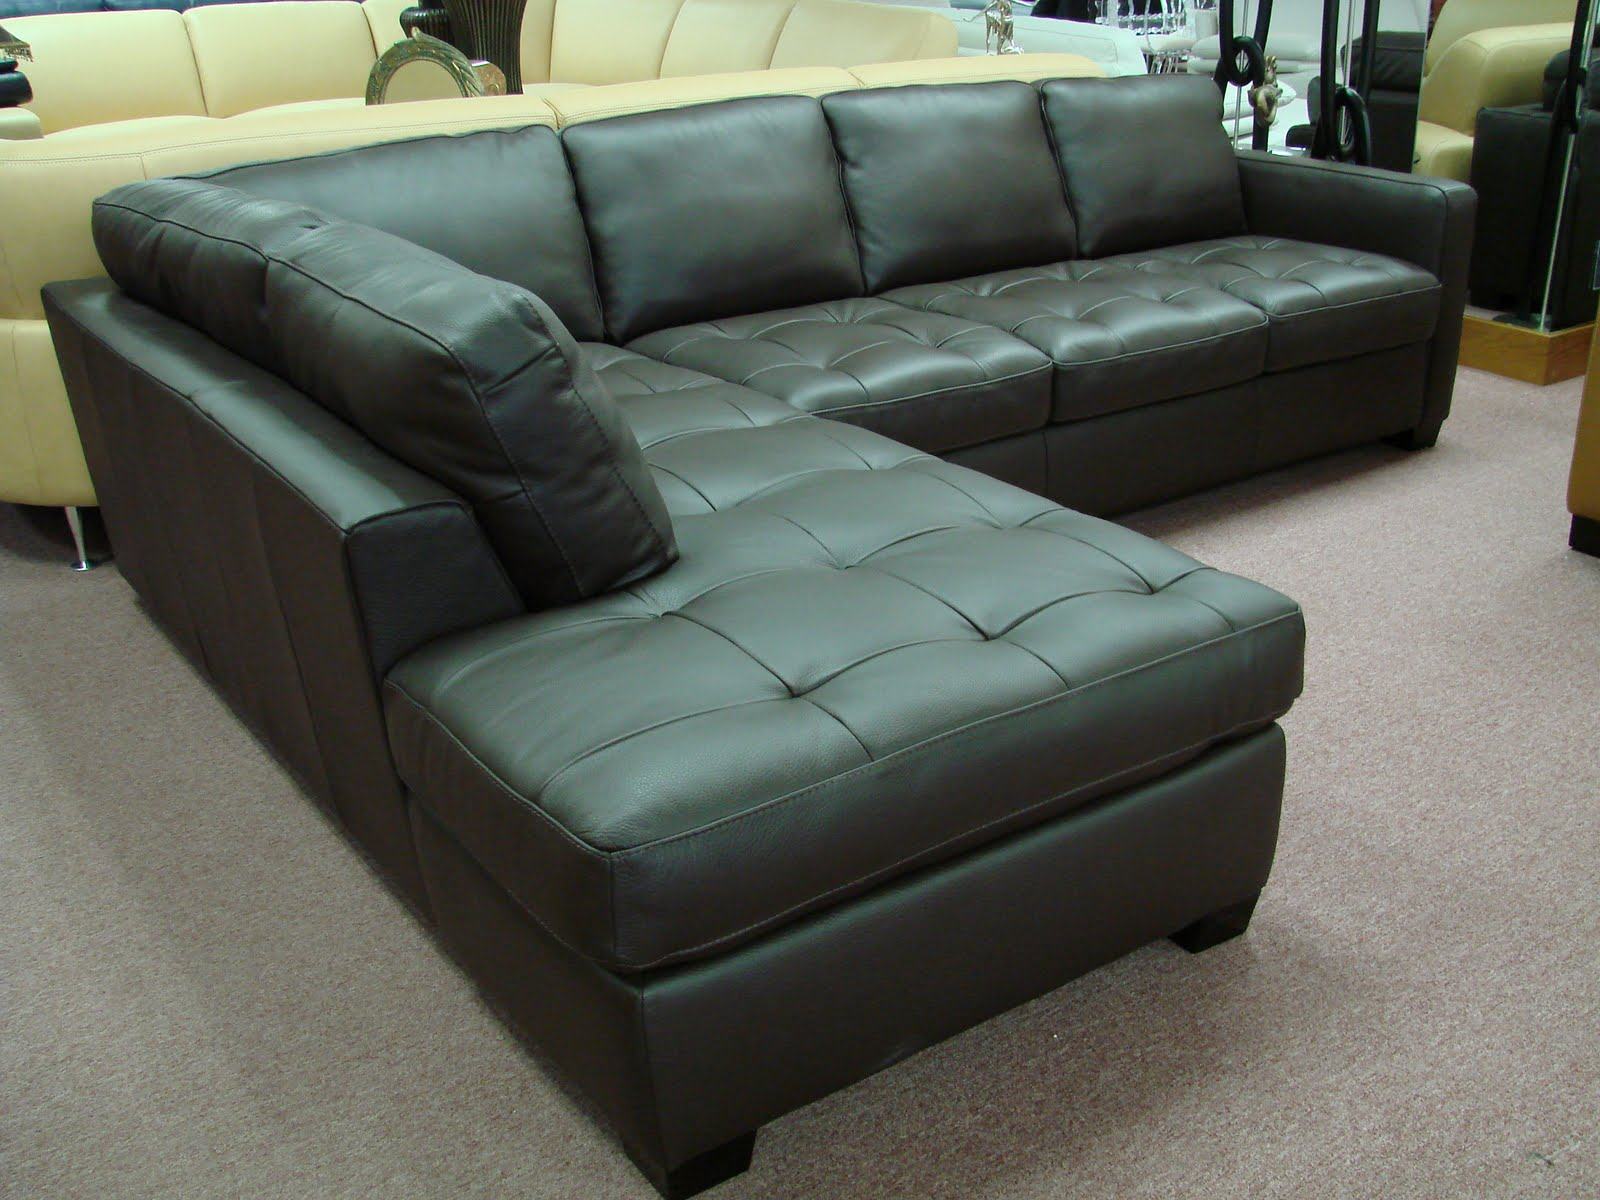 Italsofa Leather Chair Sofa Set India Natuzzi Sofas And Sectionals By Interior Concepts